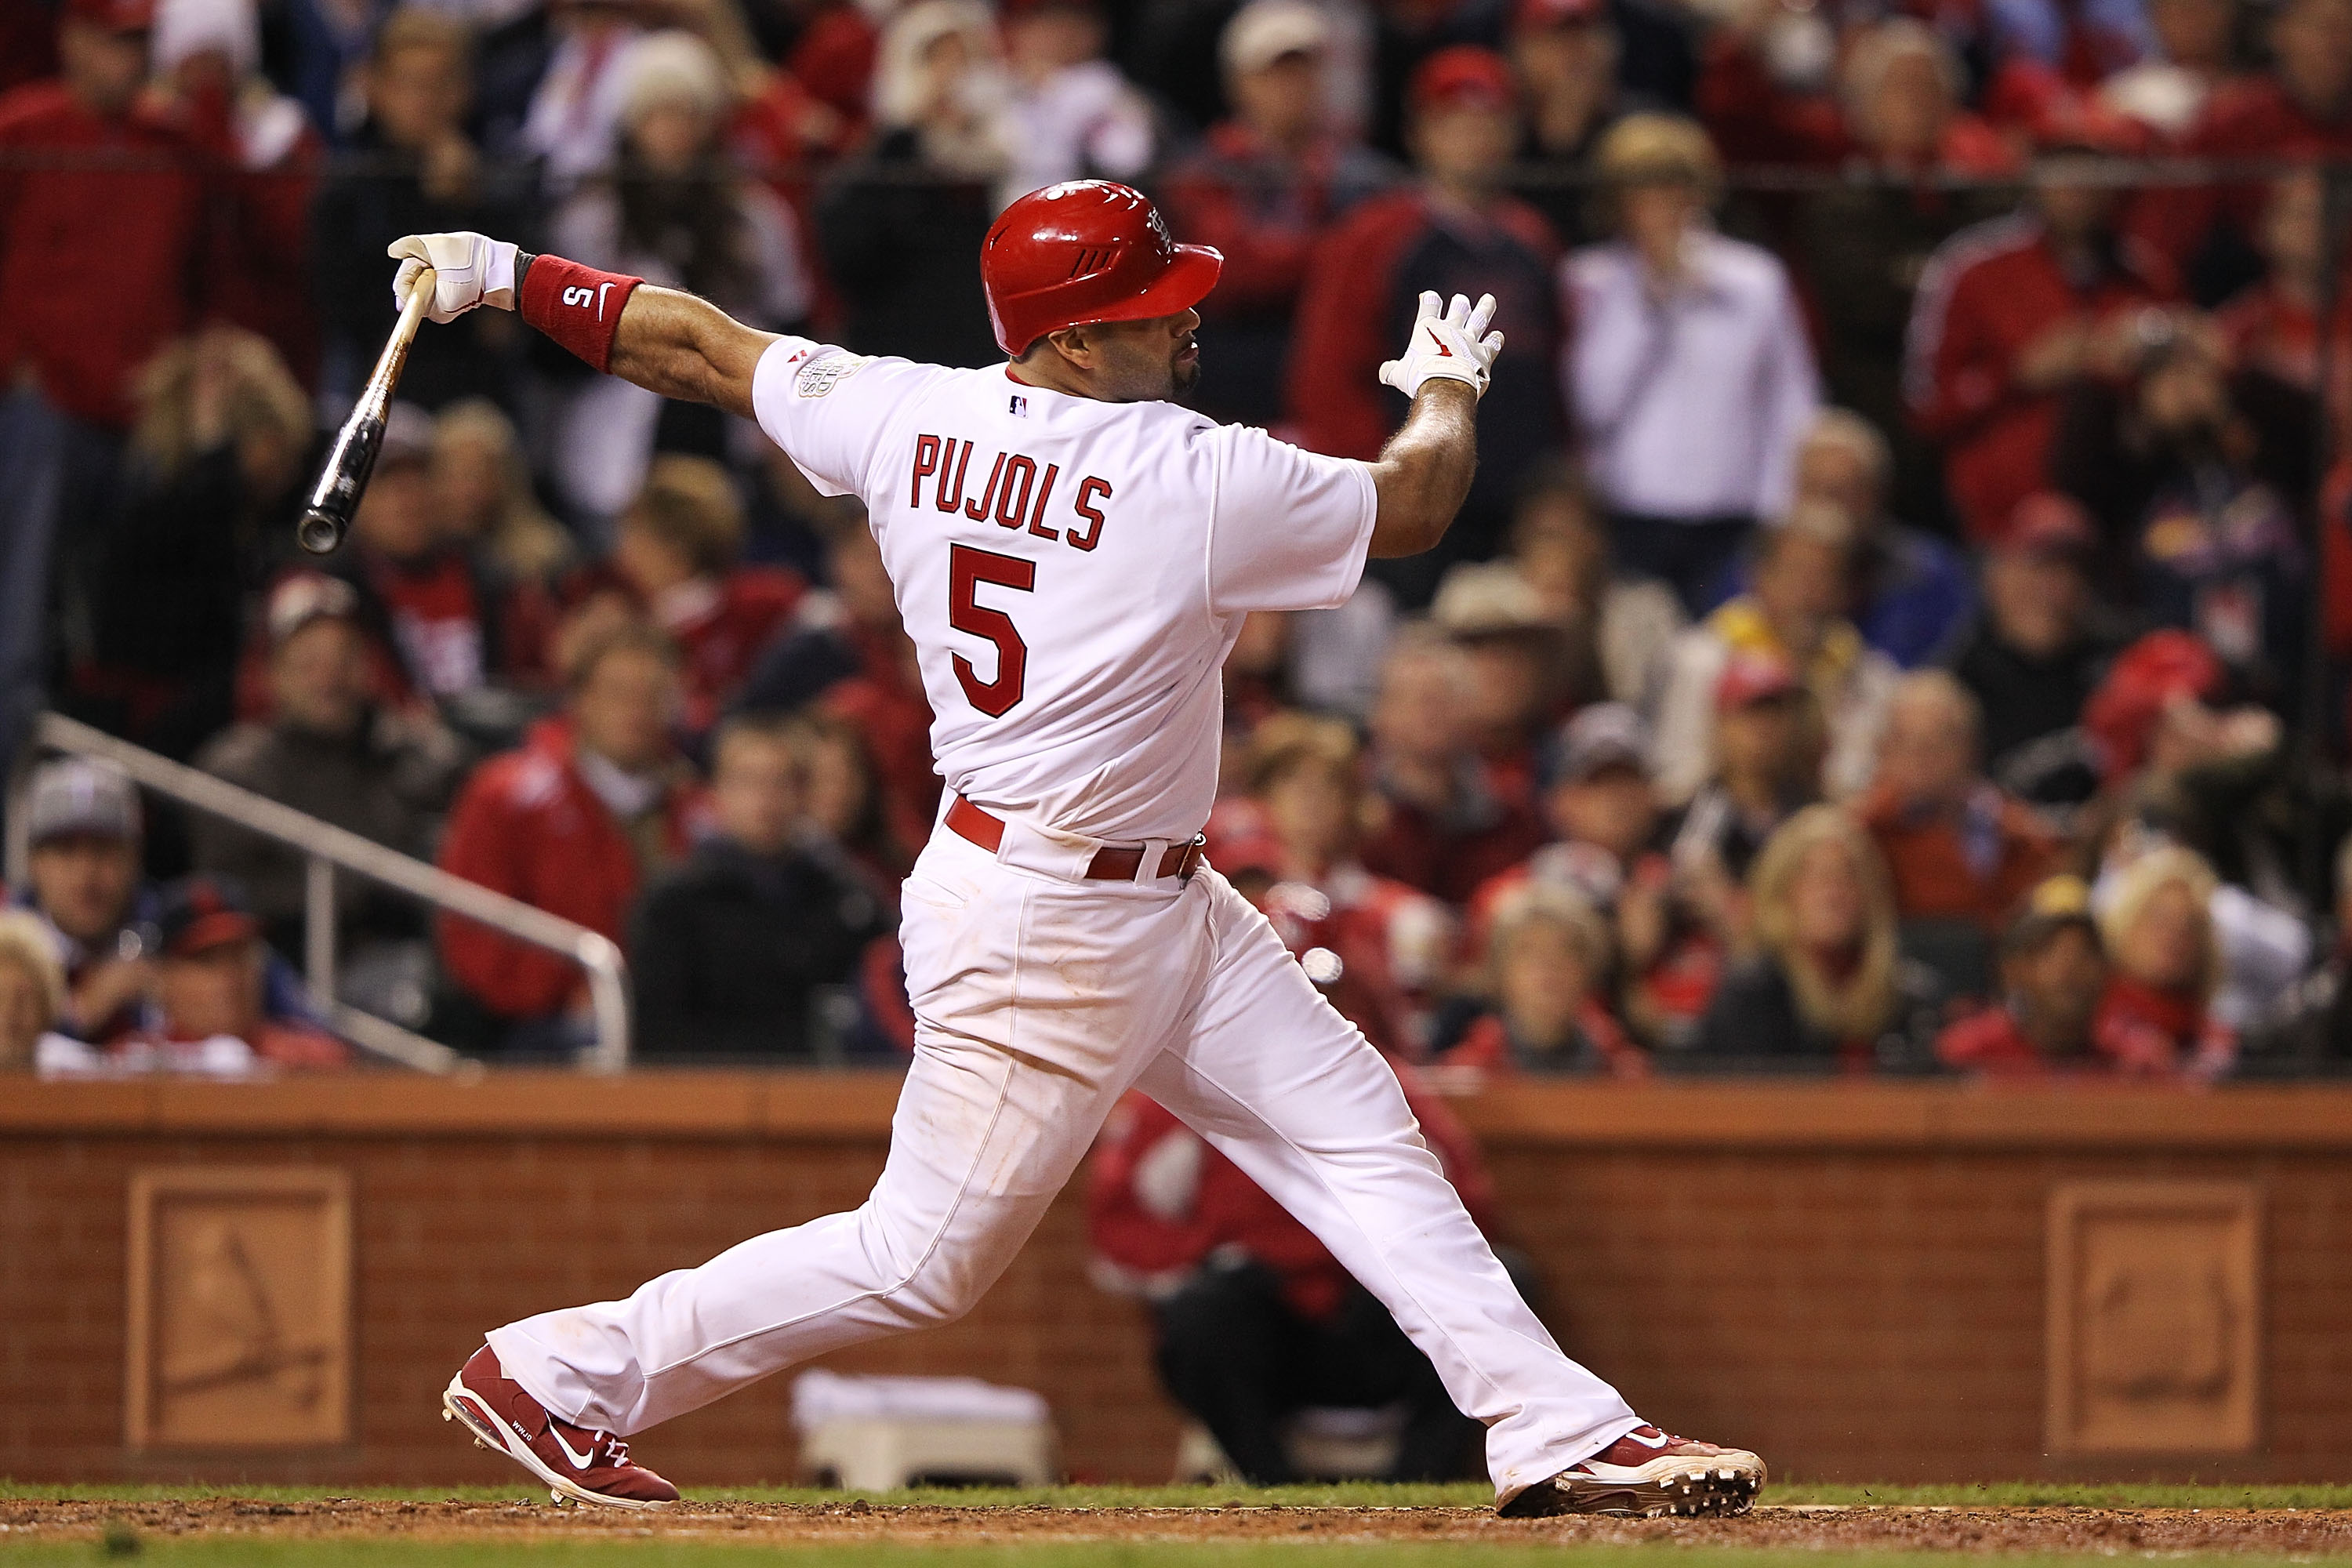 ST LOUIS, MO - OCTOBER 28:  Albert Pujols #5 of the St. Louis Cardinals strikes out in the seventh inning during Game Seven of the MLB World Series against the Texas Rangers at Busch Stadium on October 28, 2011 in St Louis, Missouri.  (Photo by Jamie Squire/Getty Images)